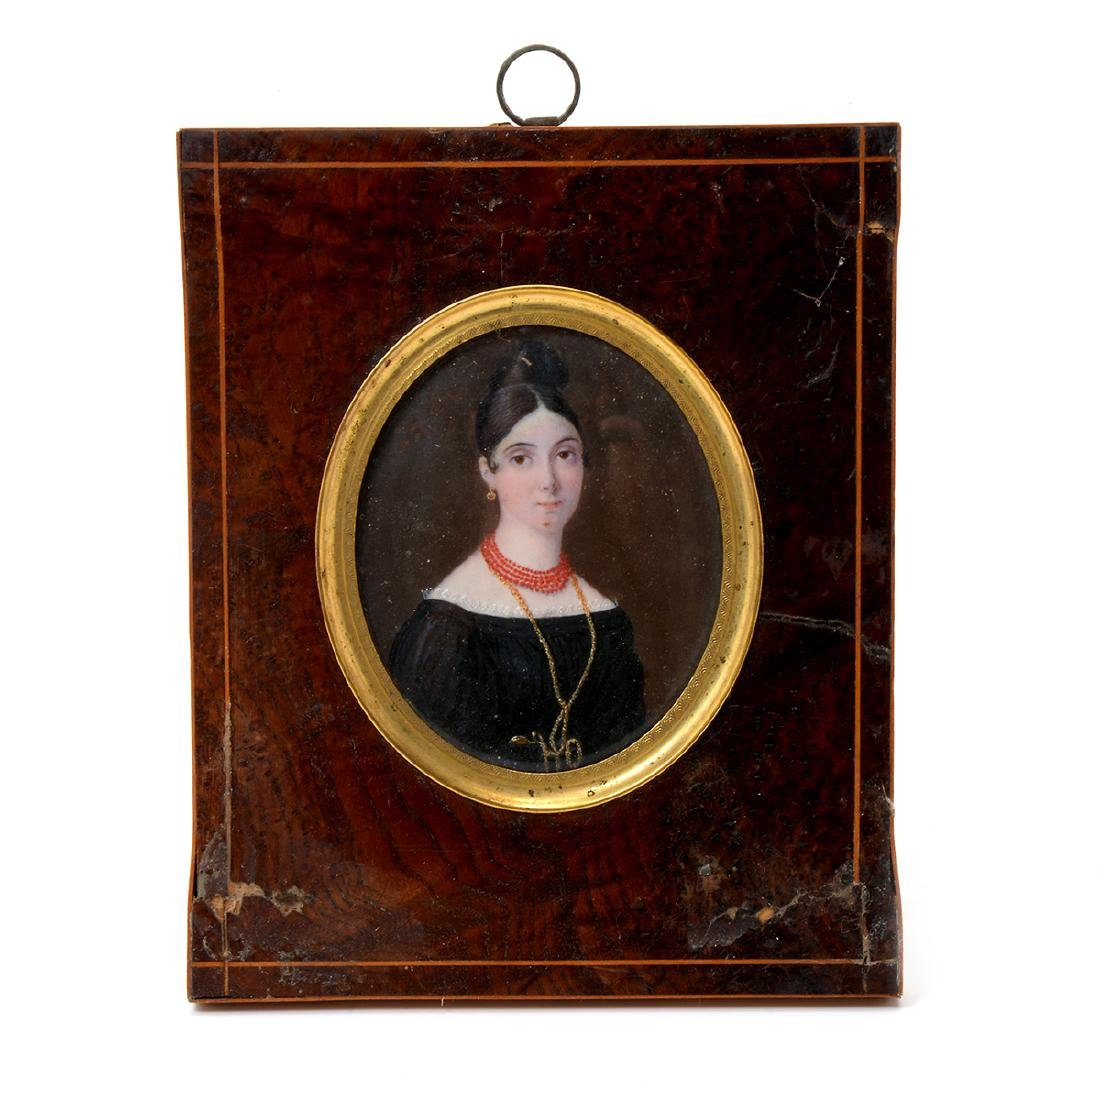 Six Miniature Portraits of Pre-Civil War Era Women - 4